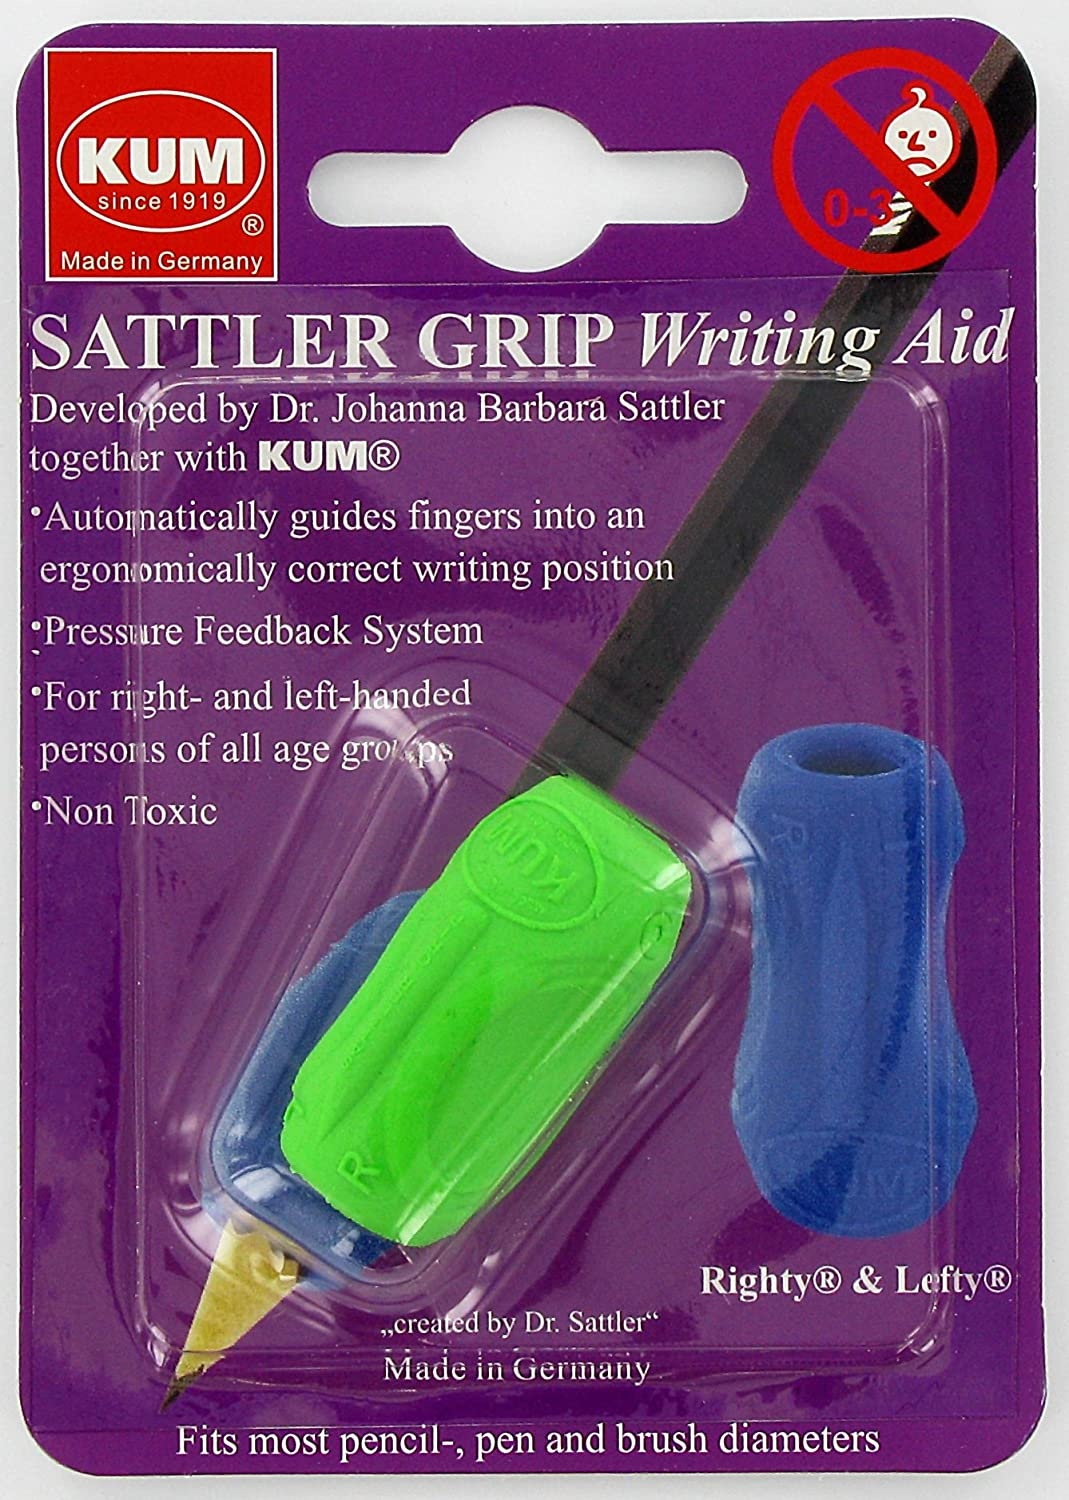 Kum 406.00.22 Non Toxic Writing Aid Sattler Grip, Colors Vary: Arts, Crafts & Sewing